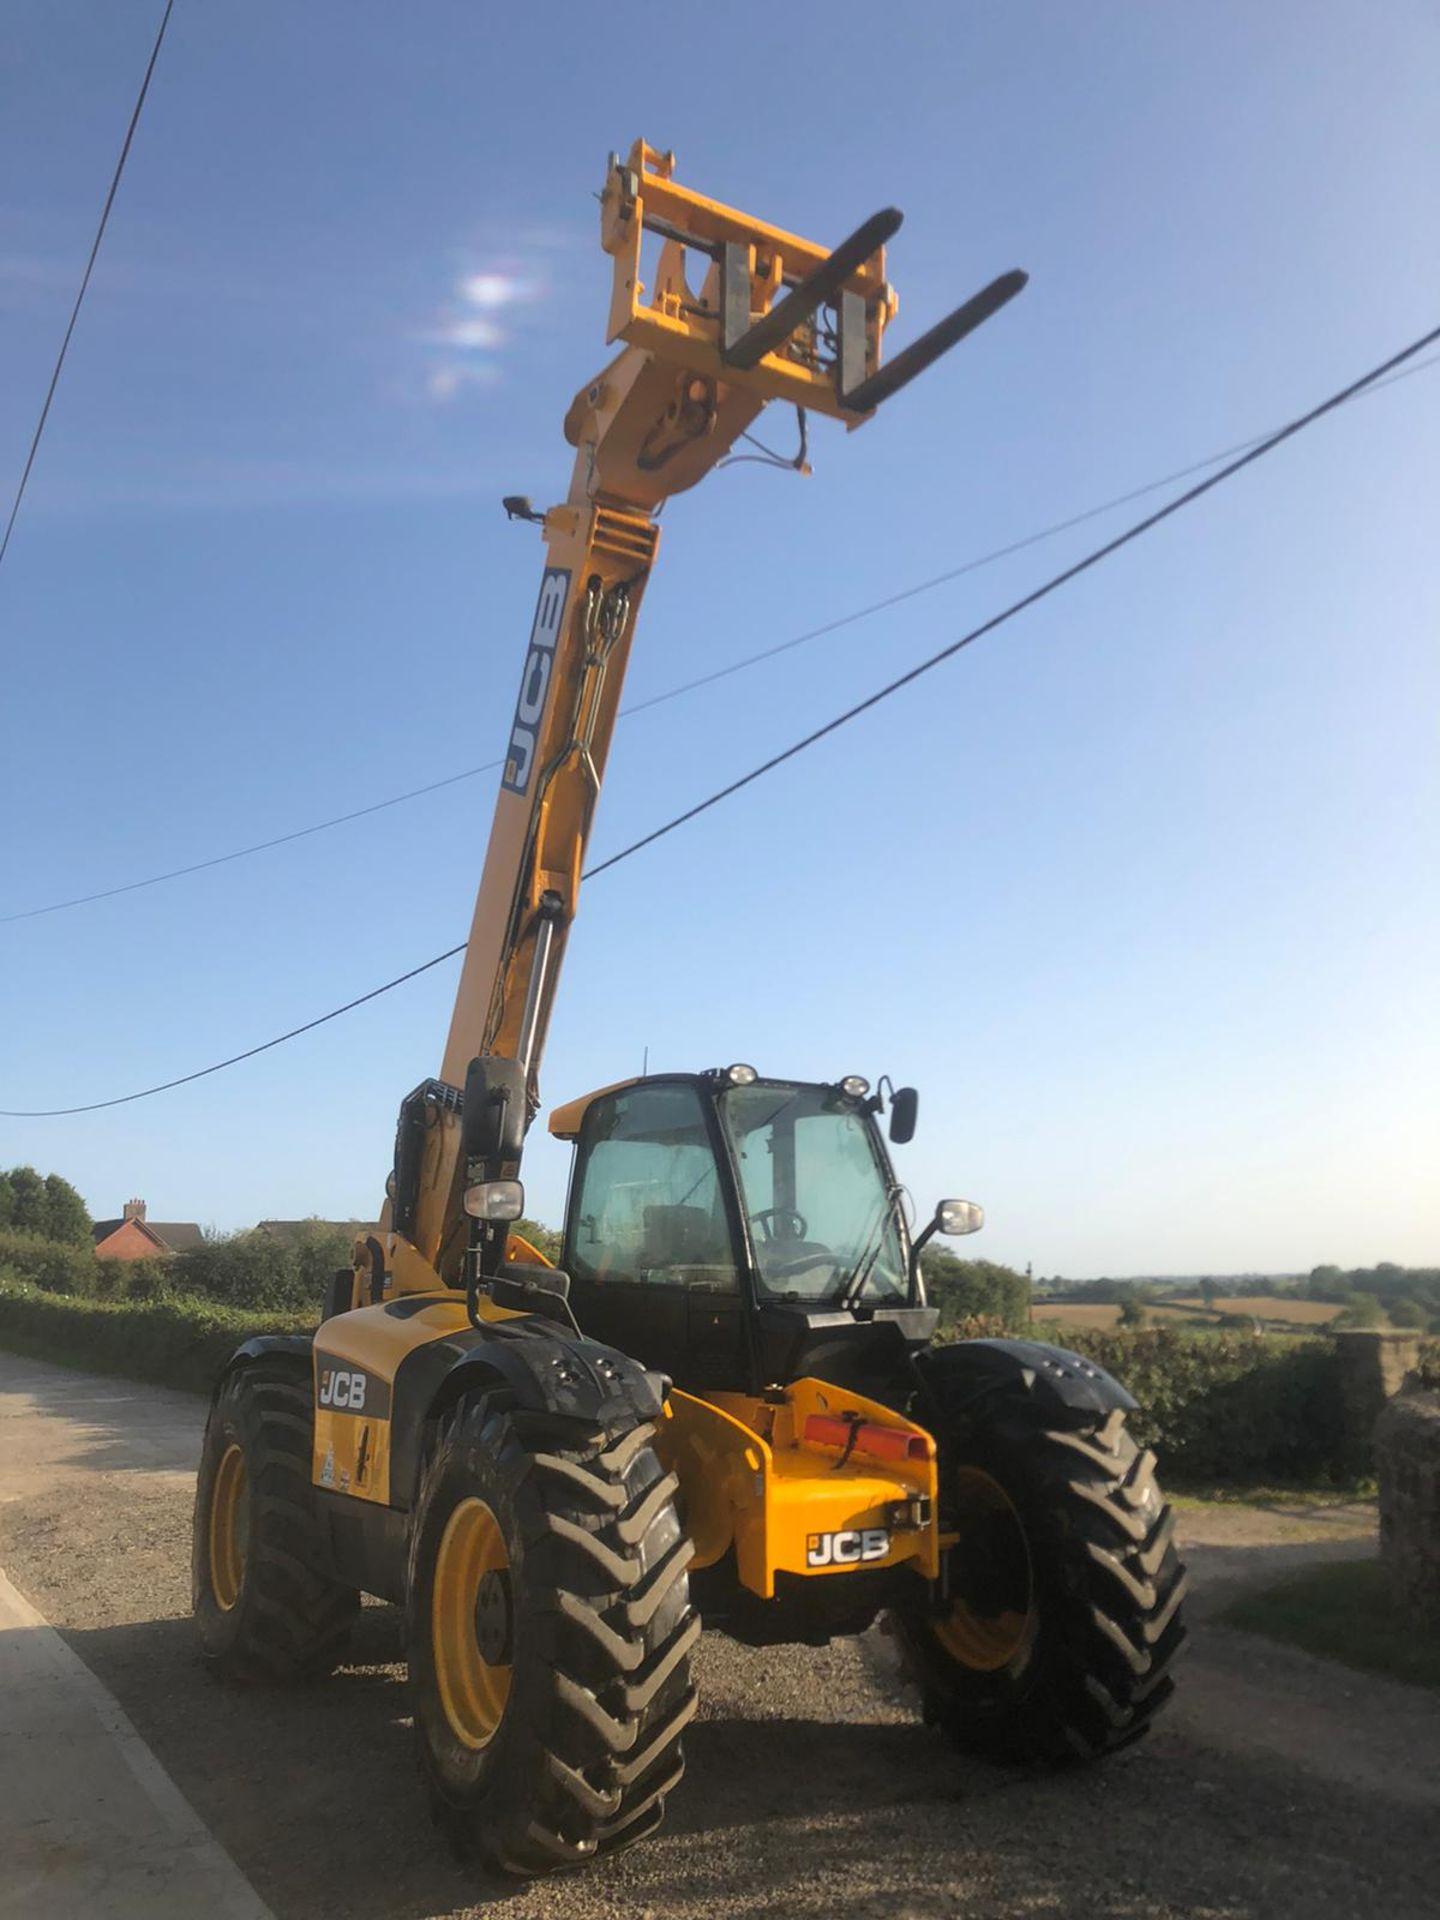 2012 JCB 550-80 AGRI PLUS TELEHANDLER, RUNS, DRIVES AND LIFTS, SHOWING 4214 HOURS *PLUS VAT* - Image 2 of 11